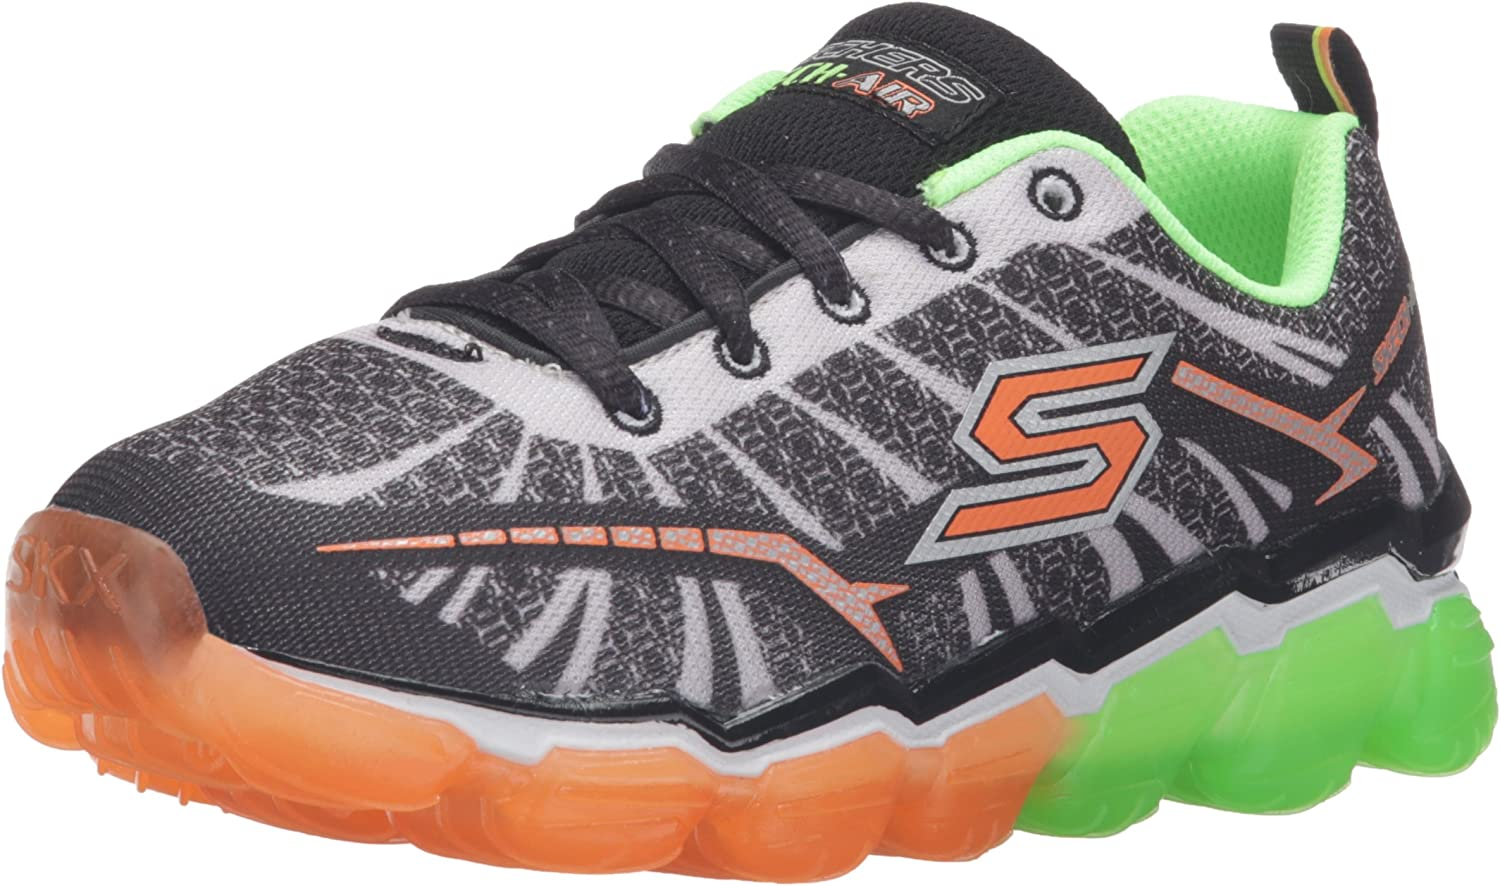 Skechers Kids Boys Boys Boys Skech Air Turbo Shock Turnschuhe (Little Kid Big Kid), schwarz Lime, 4.5 M US Big Kid B01AJE262Q  Sehr gute Klassifizierung 017994